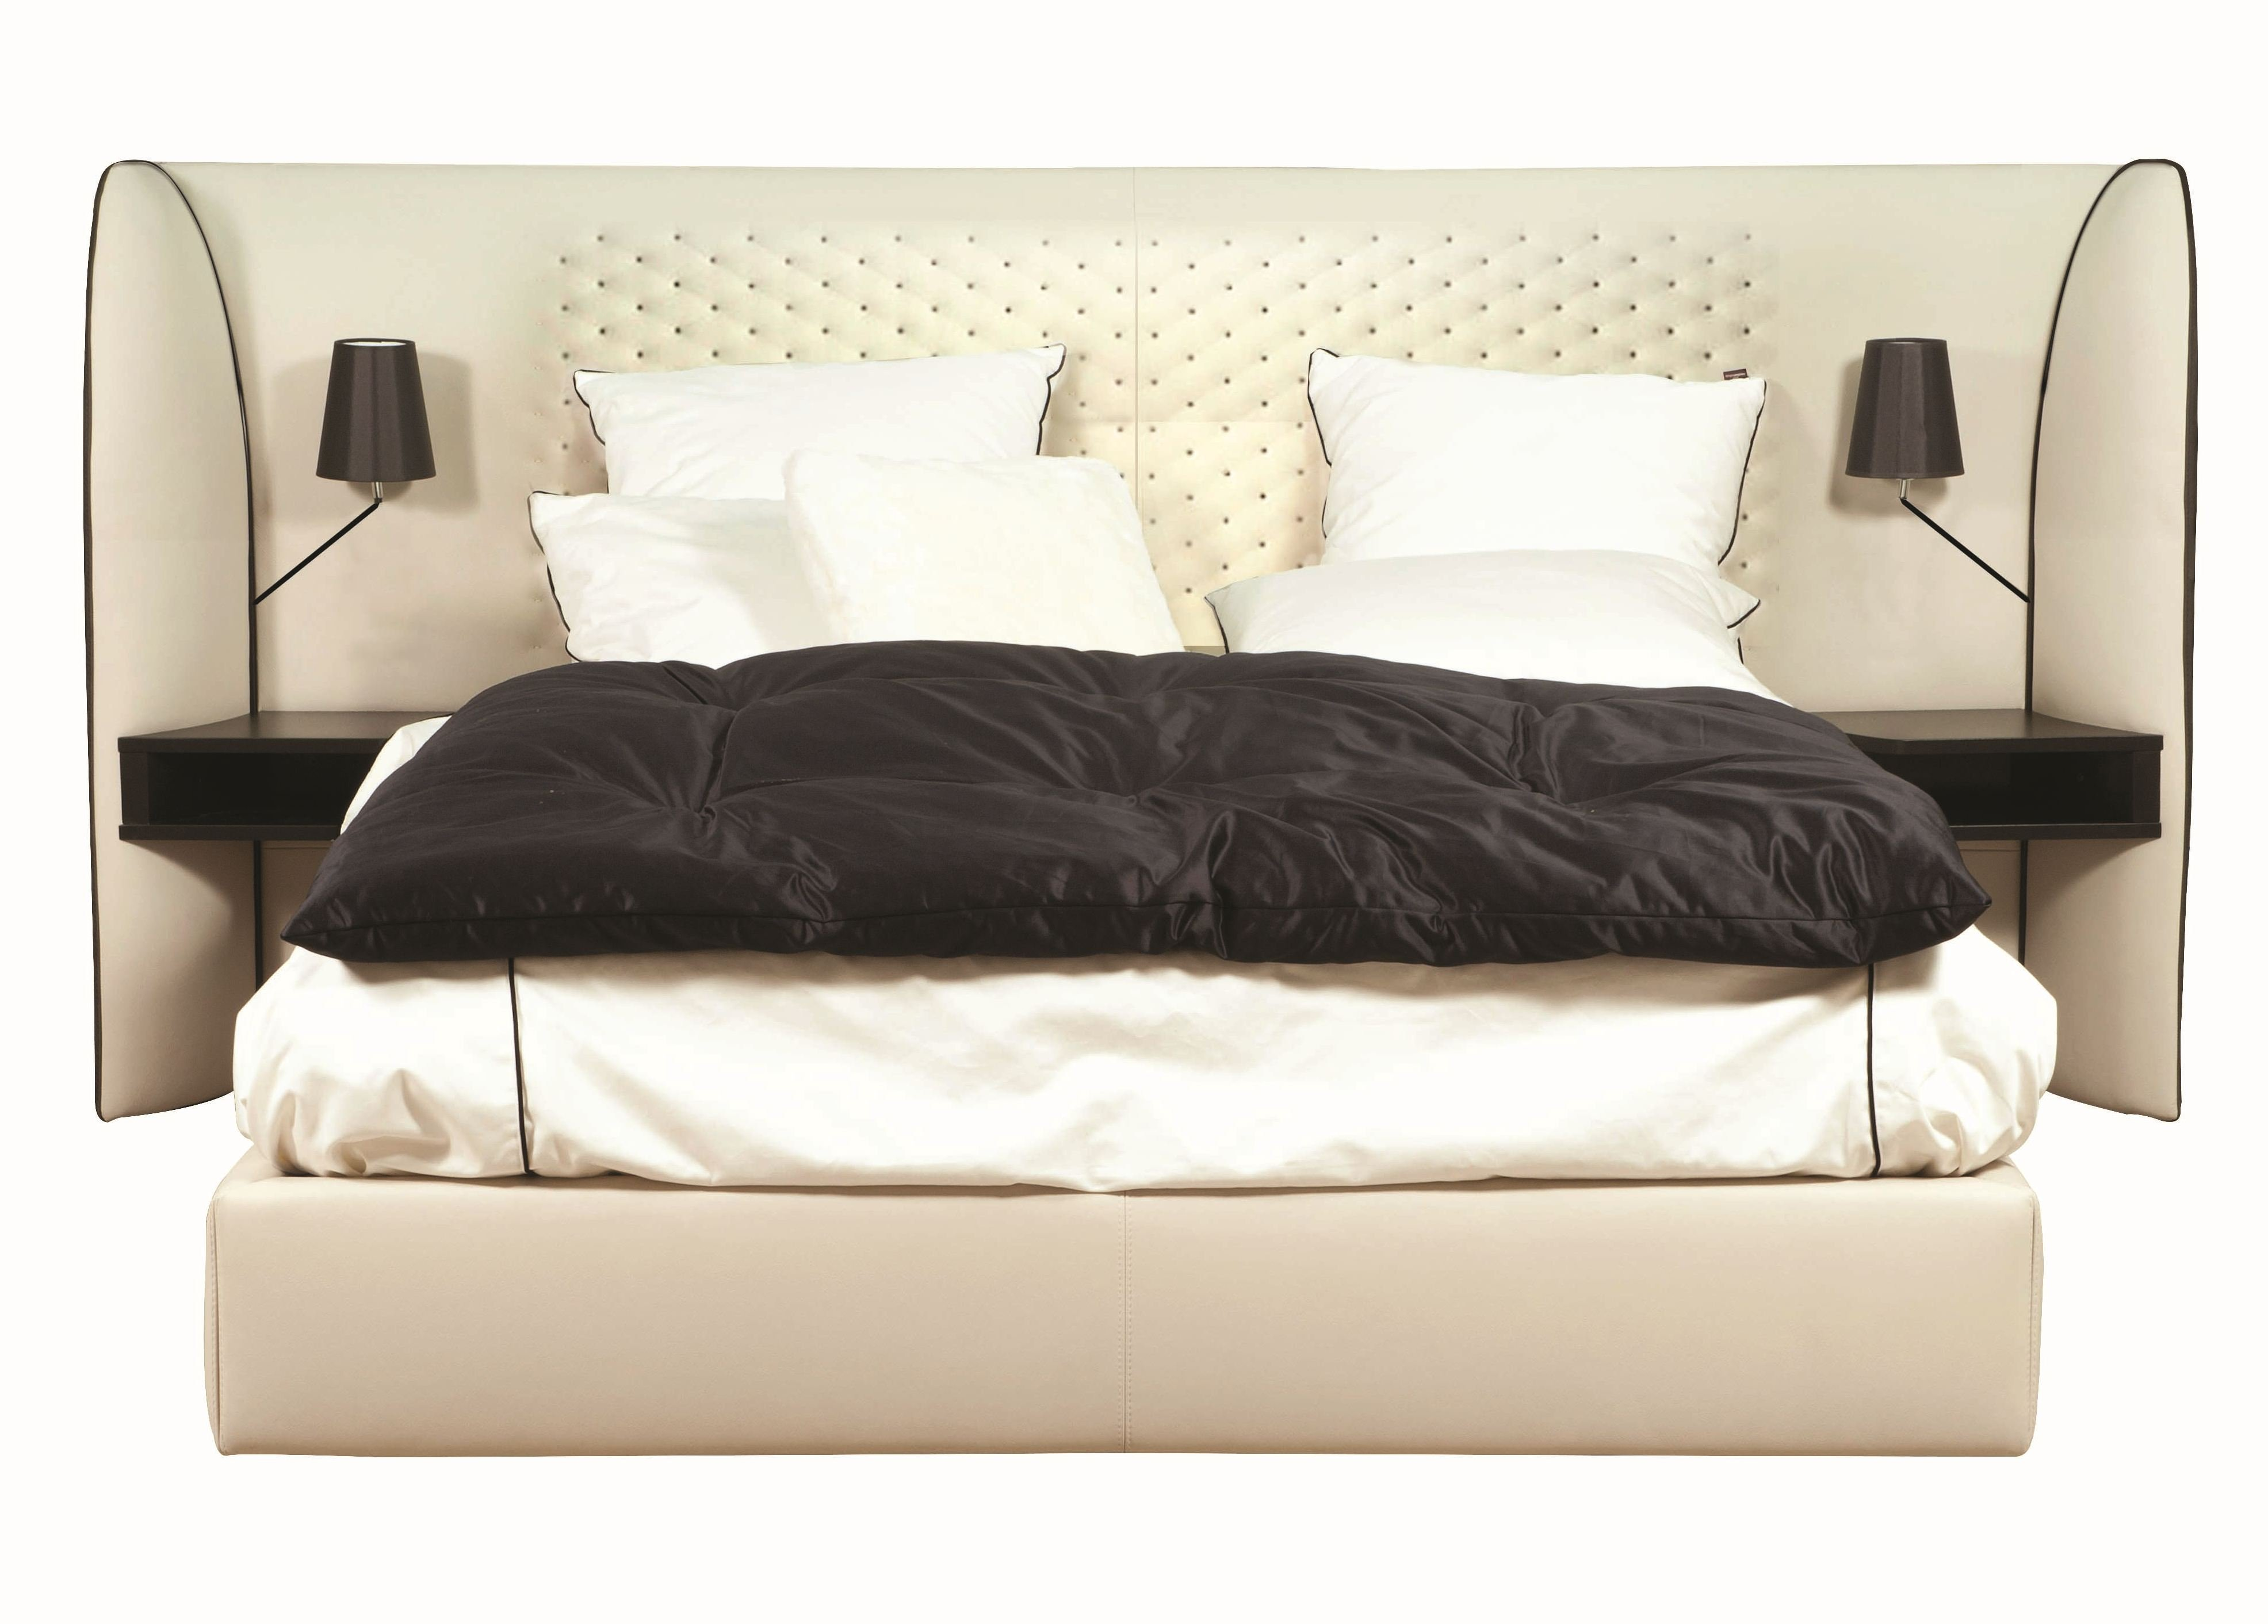 Tanned Leather Double Bed With Tufted Headboard Cherche